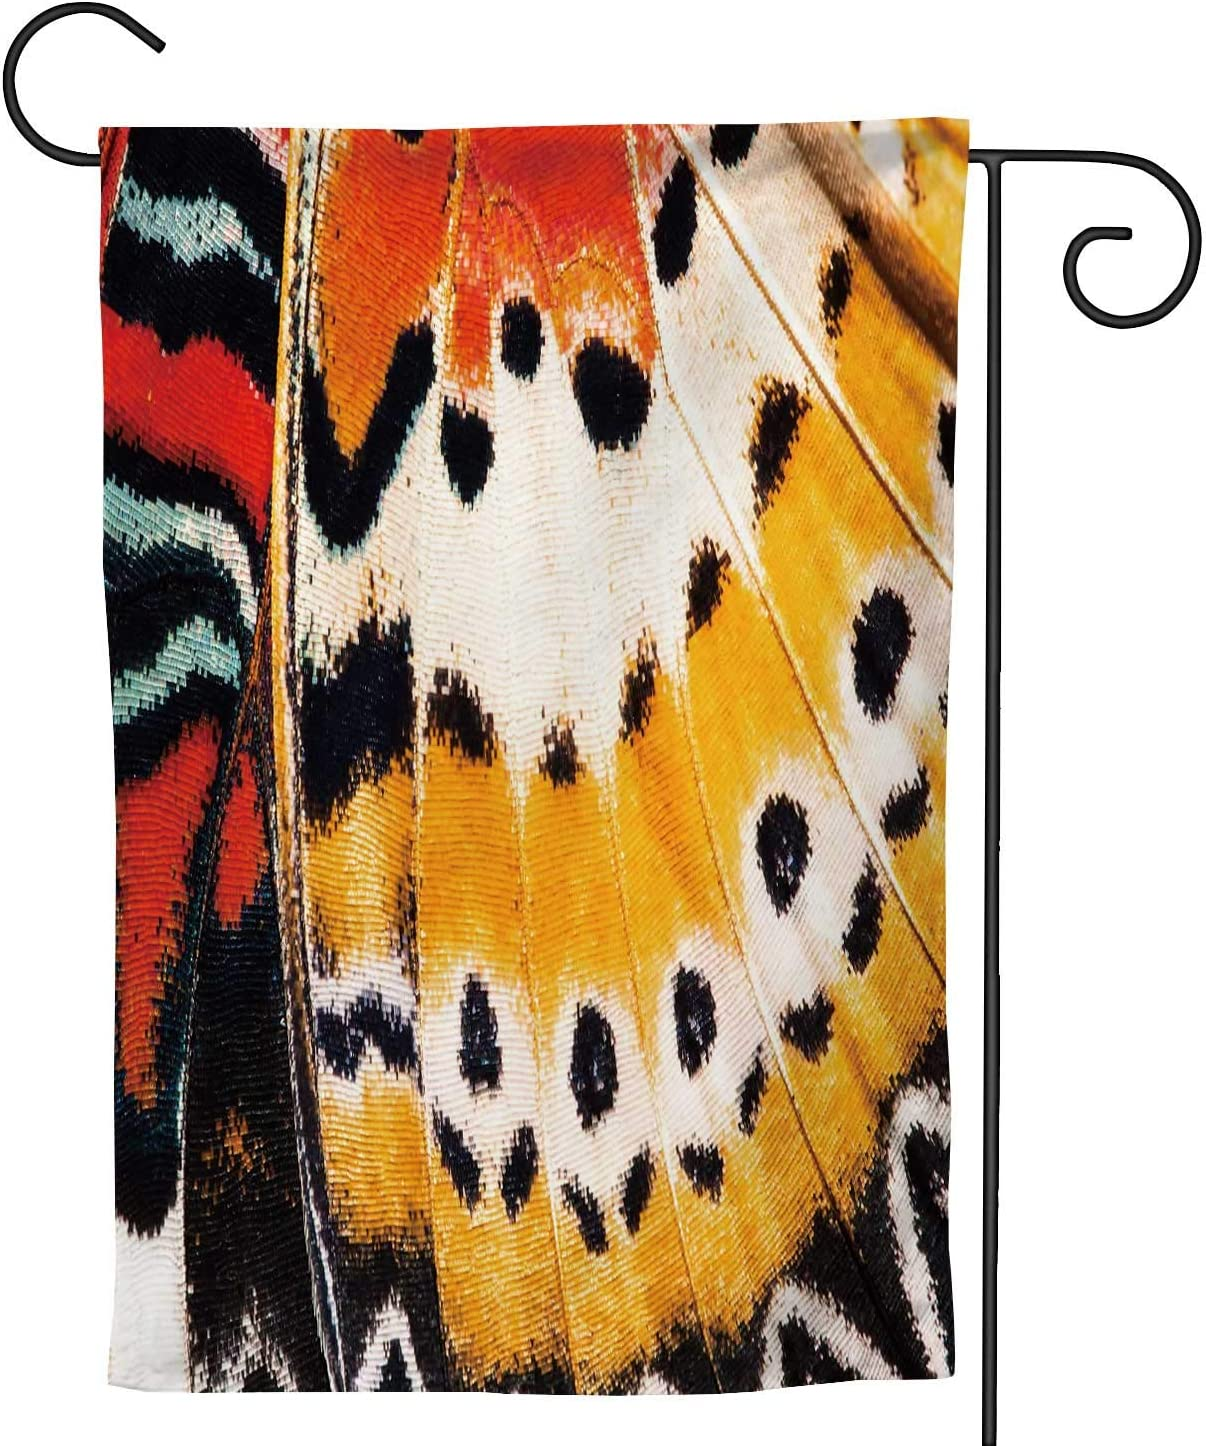 C COABALLA Leopard Lacewing Wing Texture -, Watercolor Garden Flag Double Sized, Rustic Yard Outdoor Decoration 28''x40''